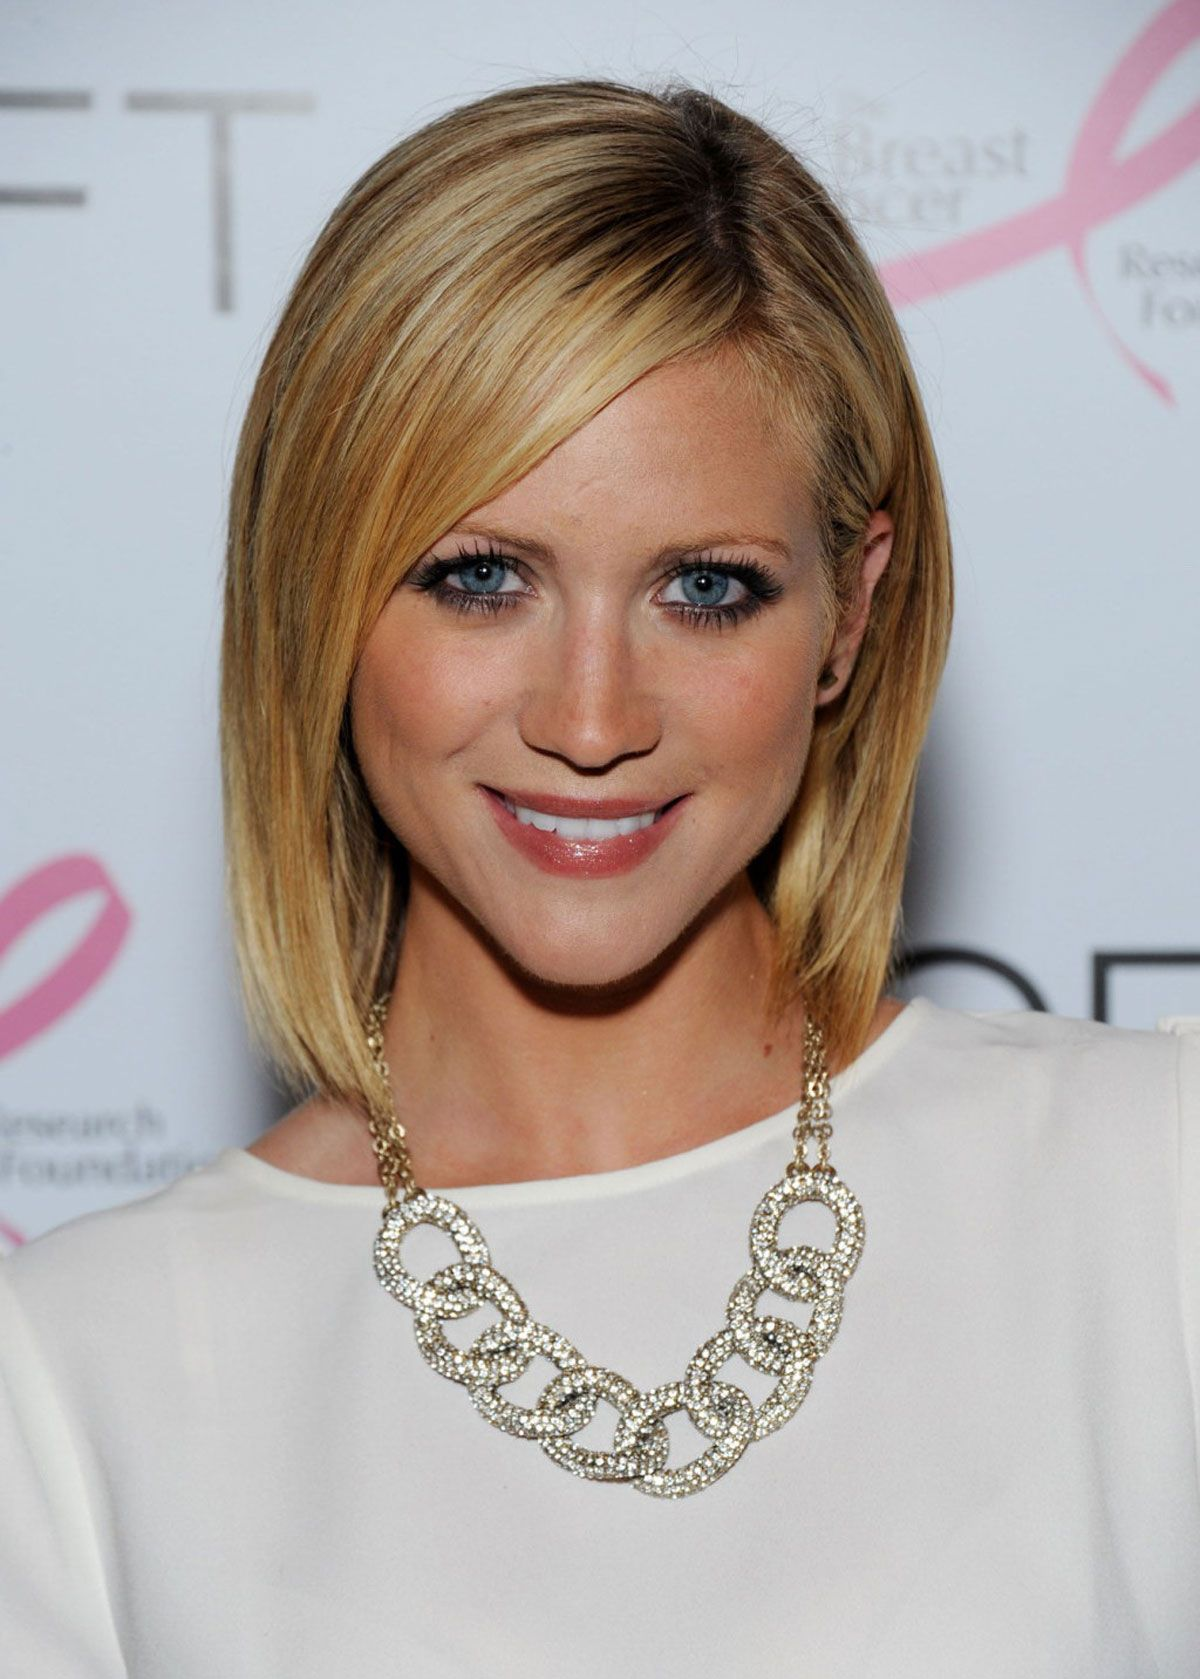 short hair for if I ever decide to cut my hair one day